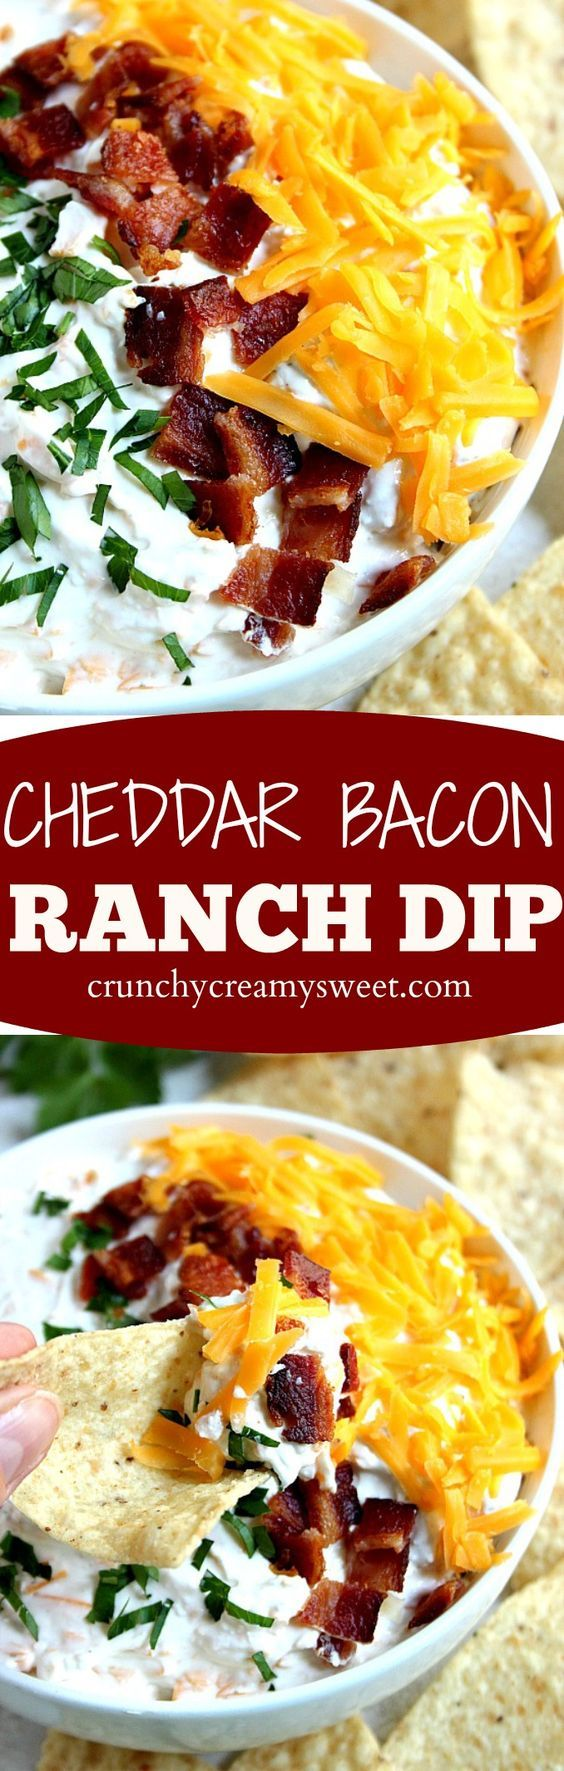 Cheddar Bacon Ranch Dip recipe - you only need 5 ingredients to mix this dip up! It's so good and perfect for a game day or a party!